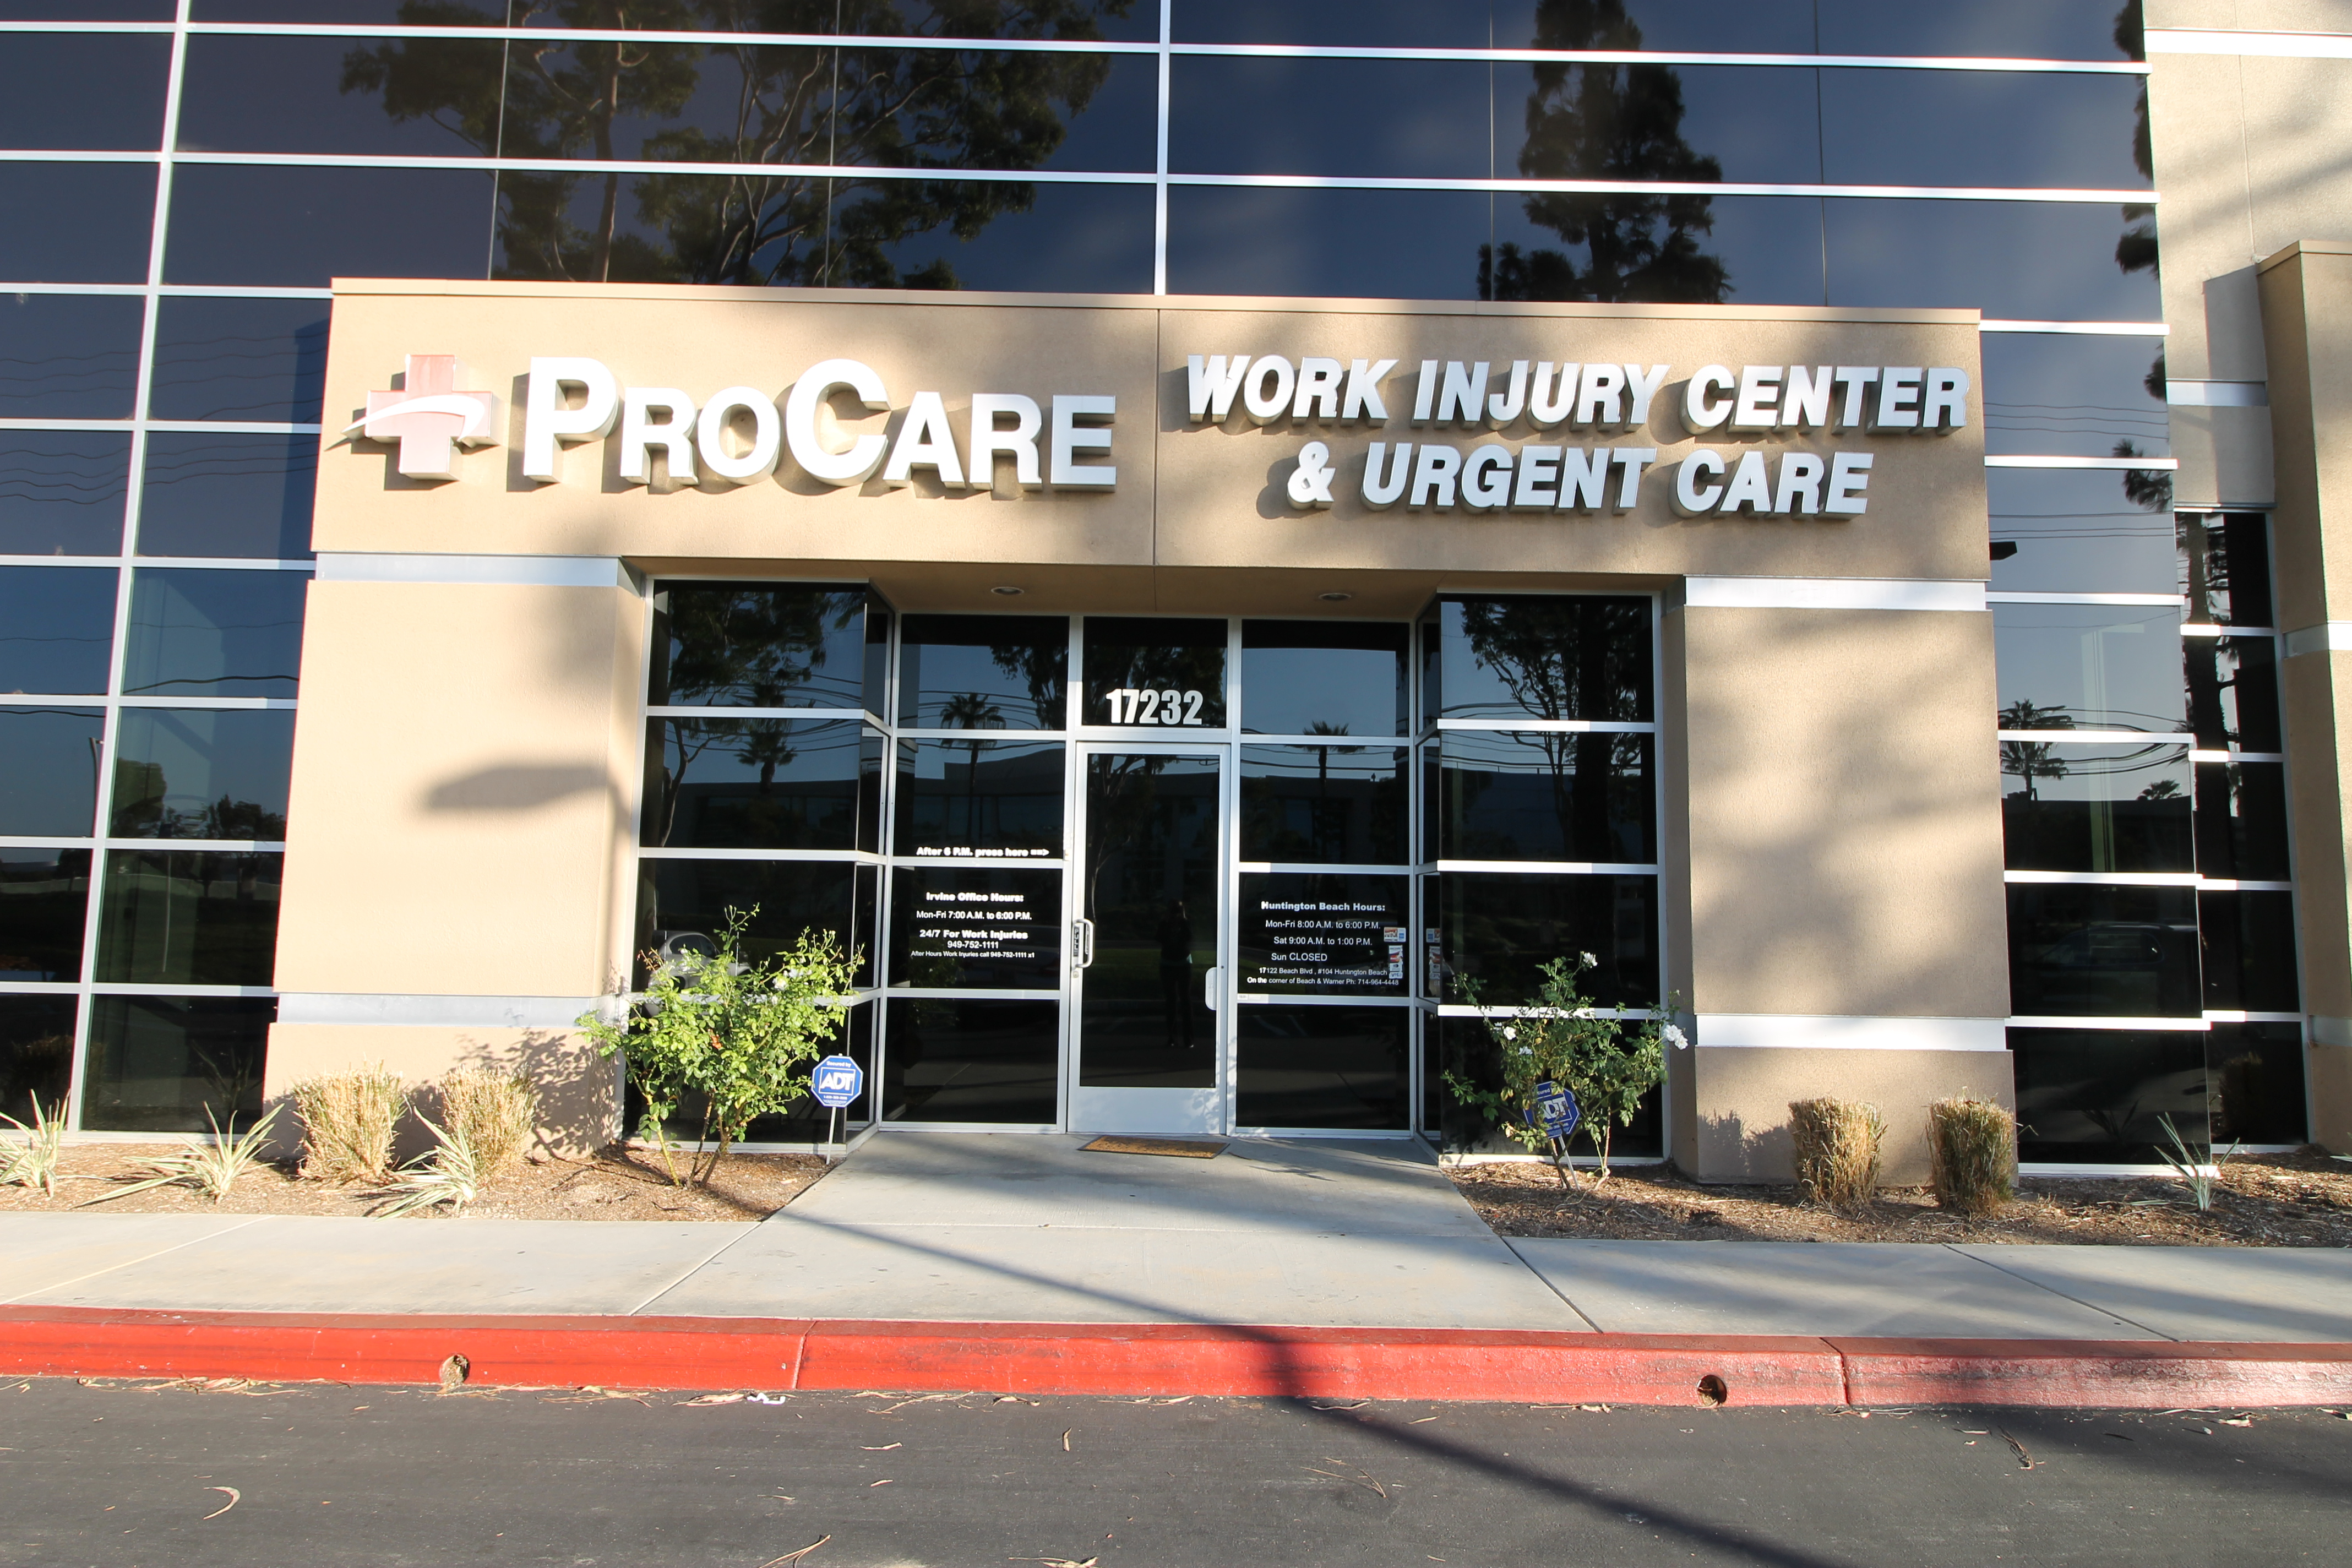 Procare Work Injury Center reviews | Urgent Care at 17232 Red Hill Ave - Irvine CA